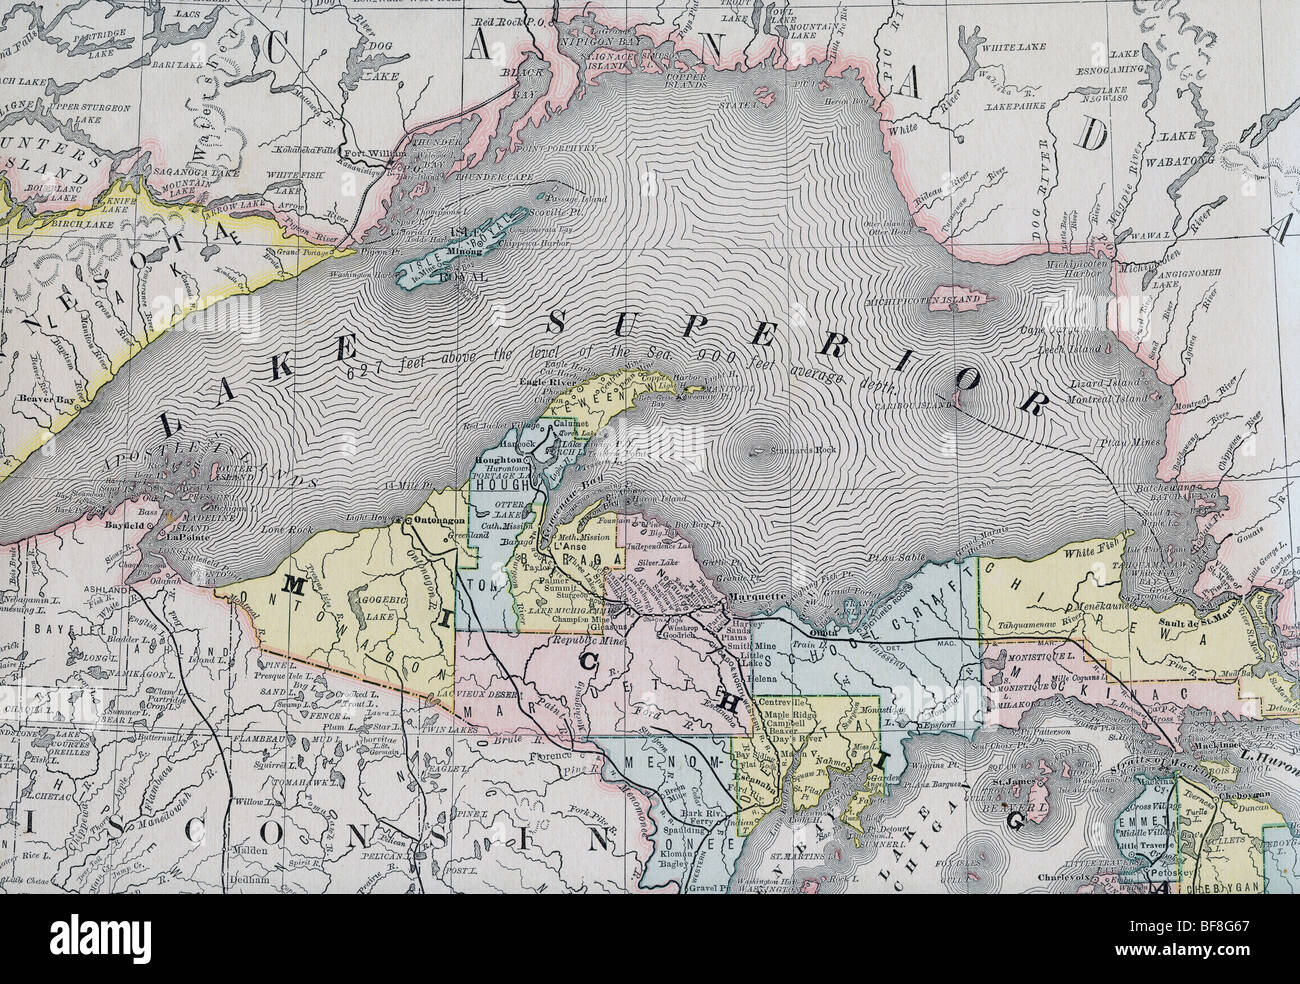 Great Lakes Map Stock Photos Great Lakes Map Stock Images Alamy